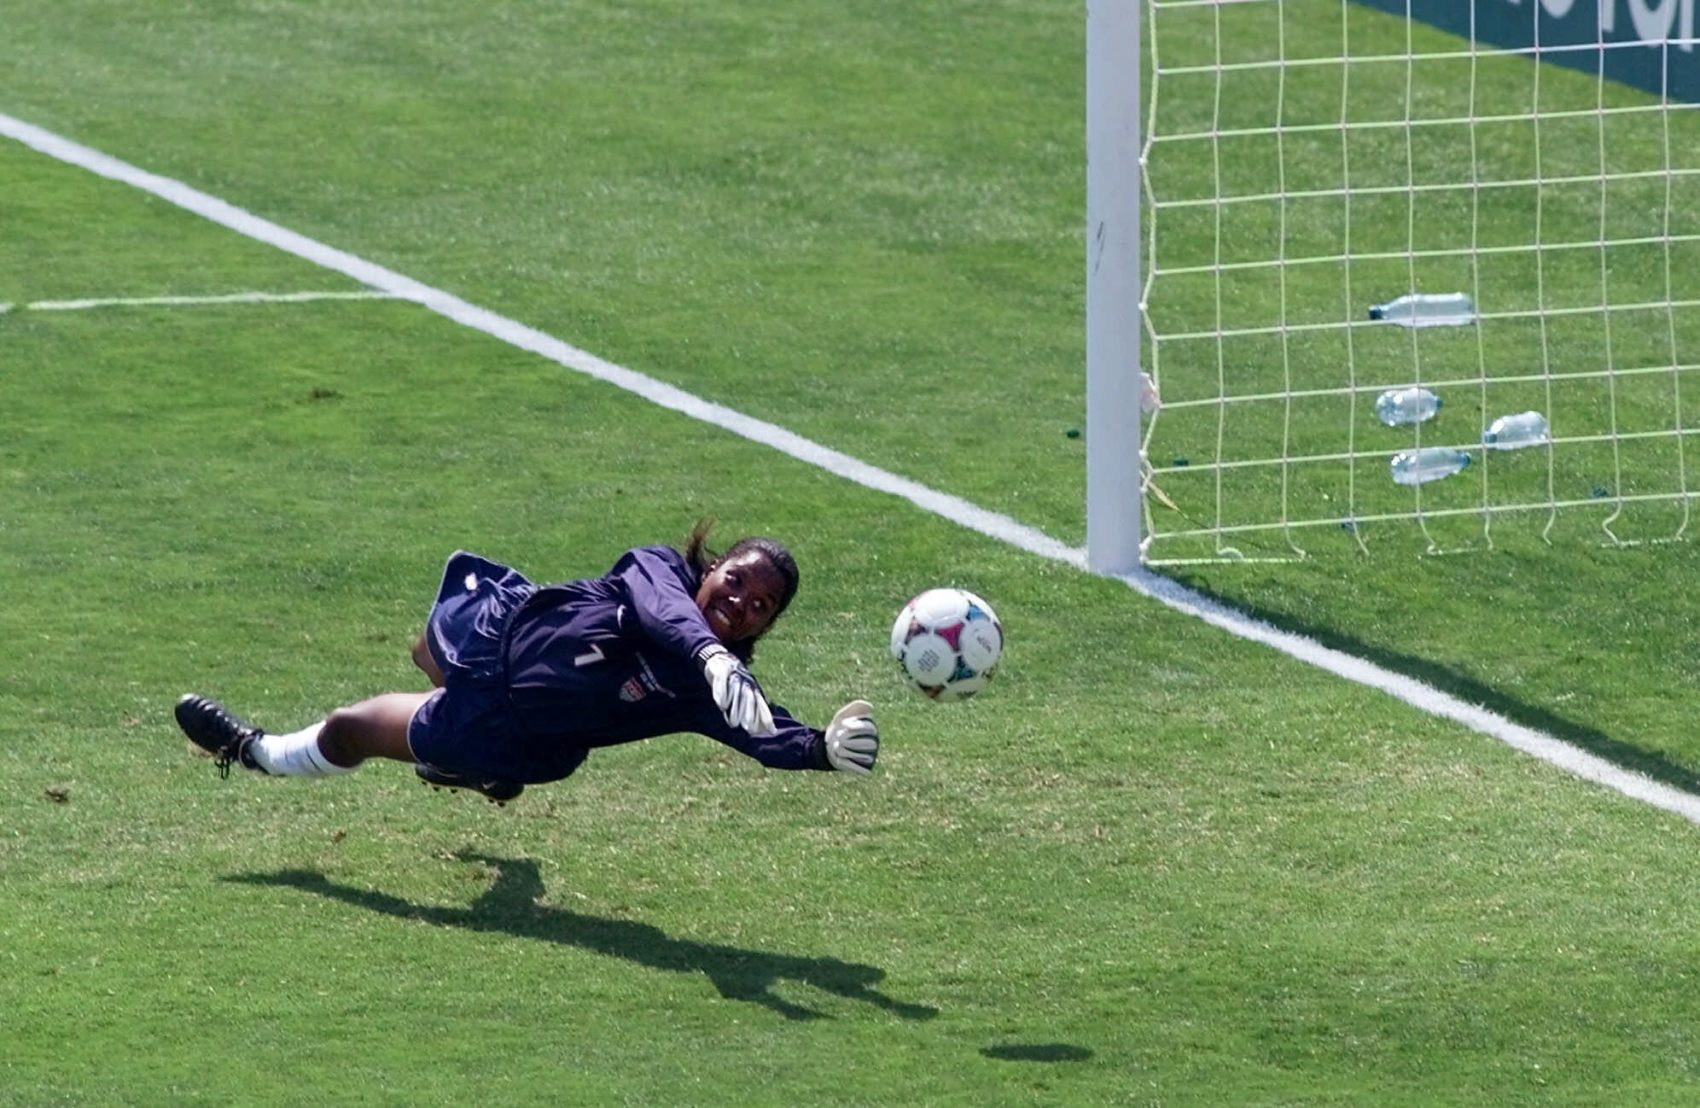 Briana Scurry's save in the 1999 Women's World Cup final shootout set the stage for a Team USA win. (AP Photo/Eric Risberg)